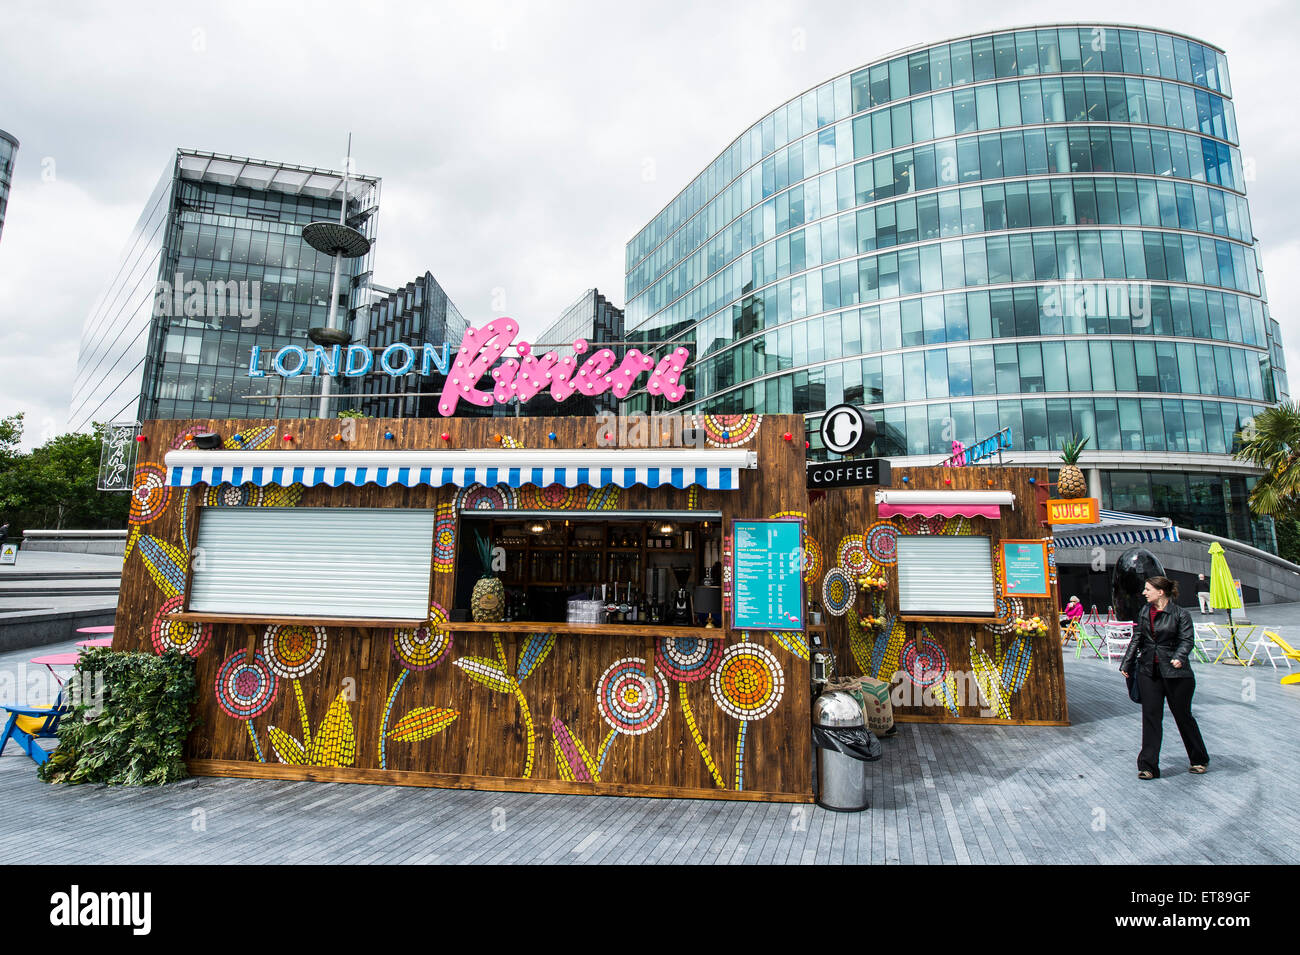 london riviera pop up cafe next to city hall in london with brightly stock photo 83776351 alamy. Black Bedroom Furniture Sets. Home Design Ideas